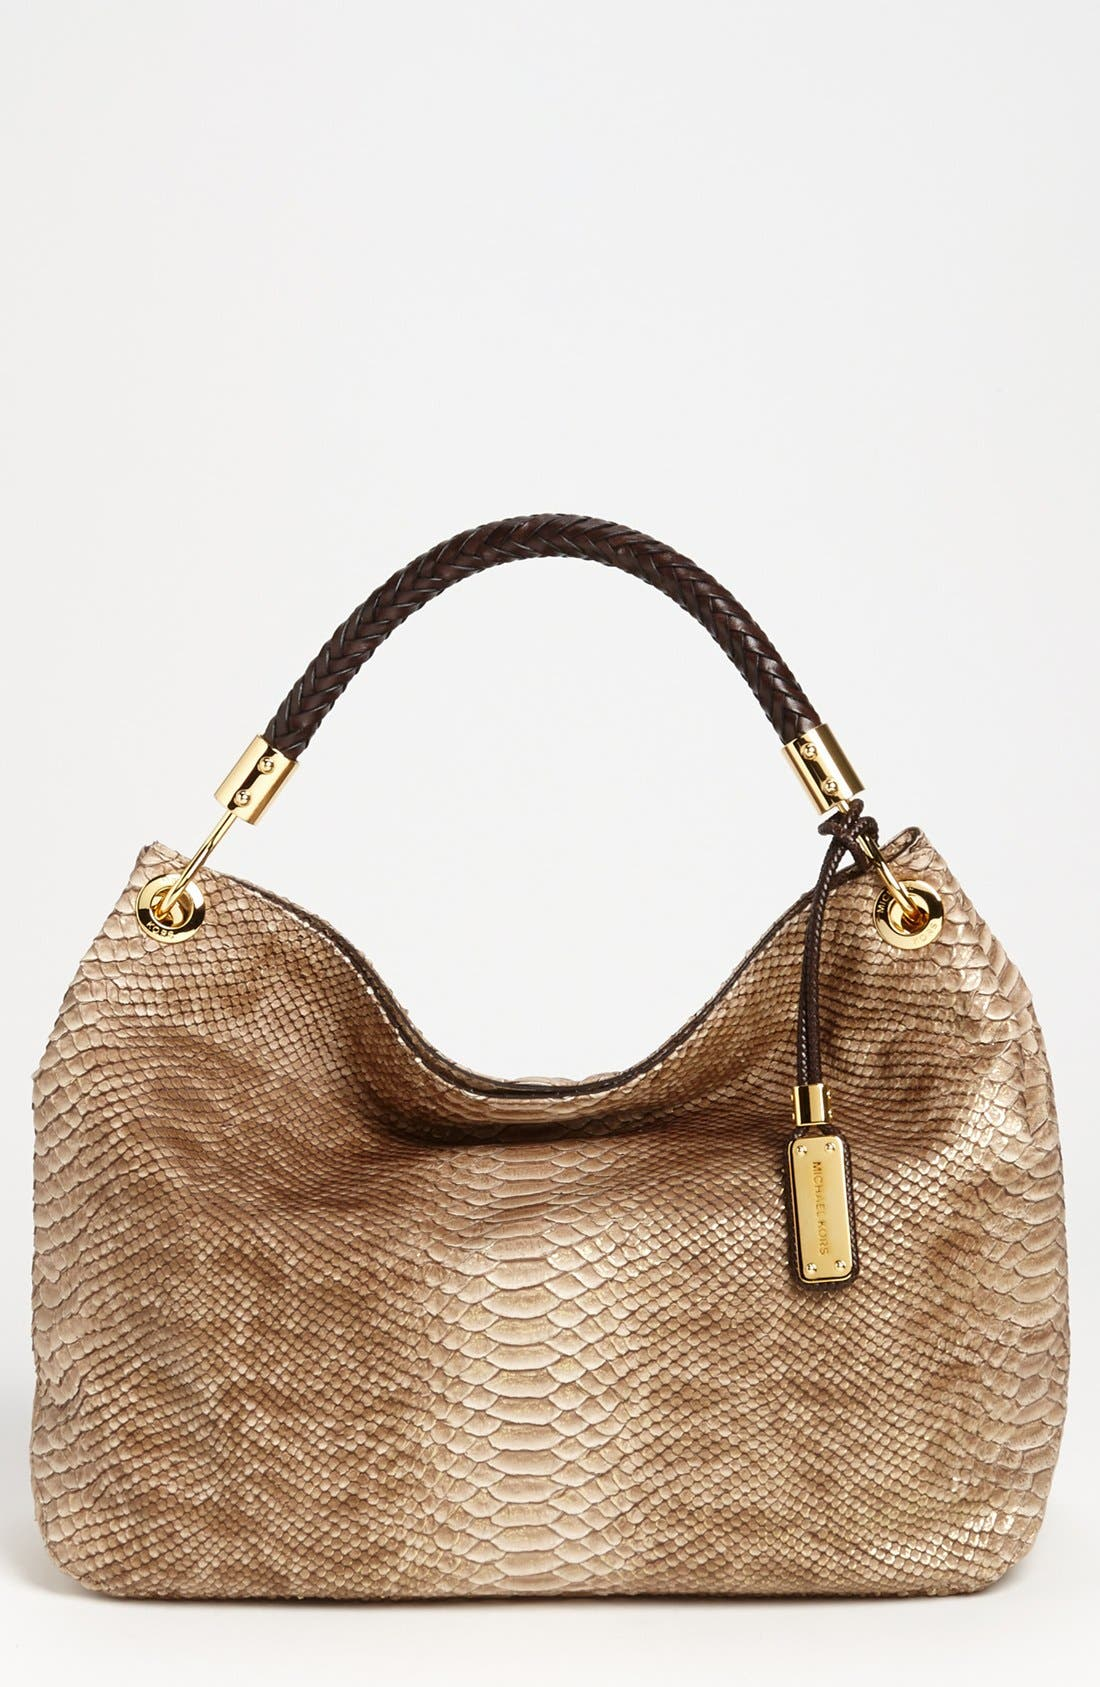 Alternate Image 1 Selected - Michael Kors 'Skorpios' Python Print Shoulder Bag